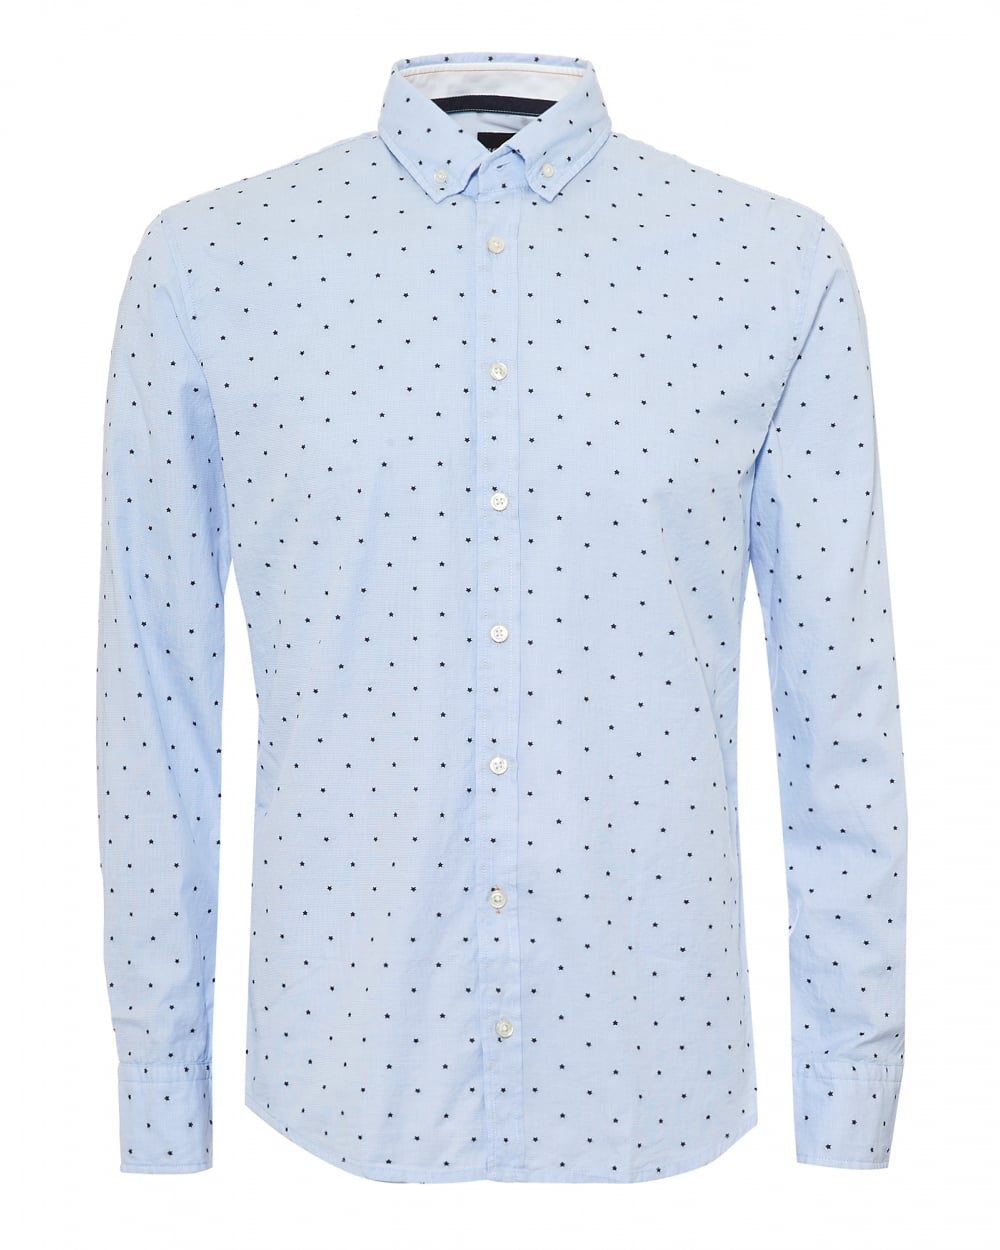 cheap sale latest style best prices Mens Epreppy Shirt, All Over Small Star Print Sky Blue Shirt